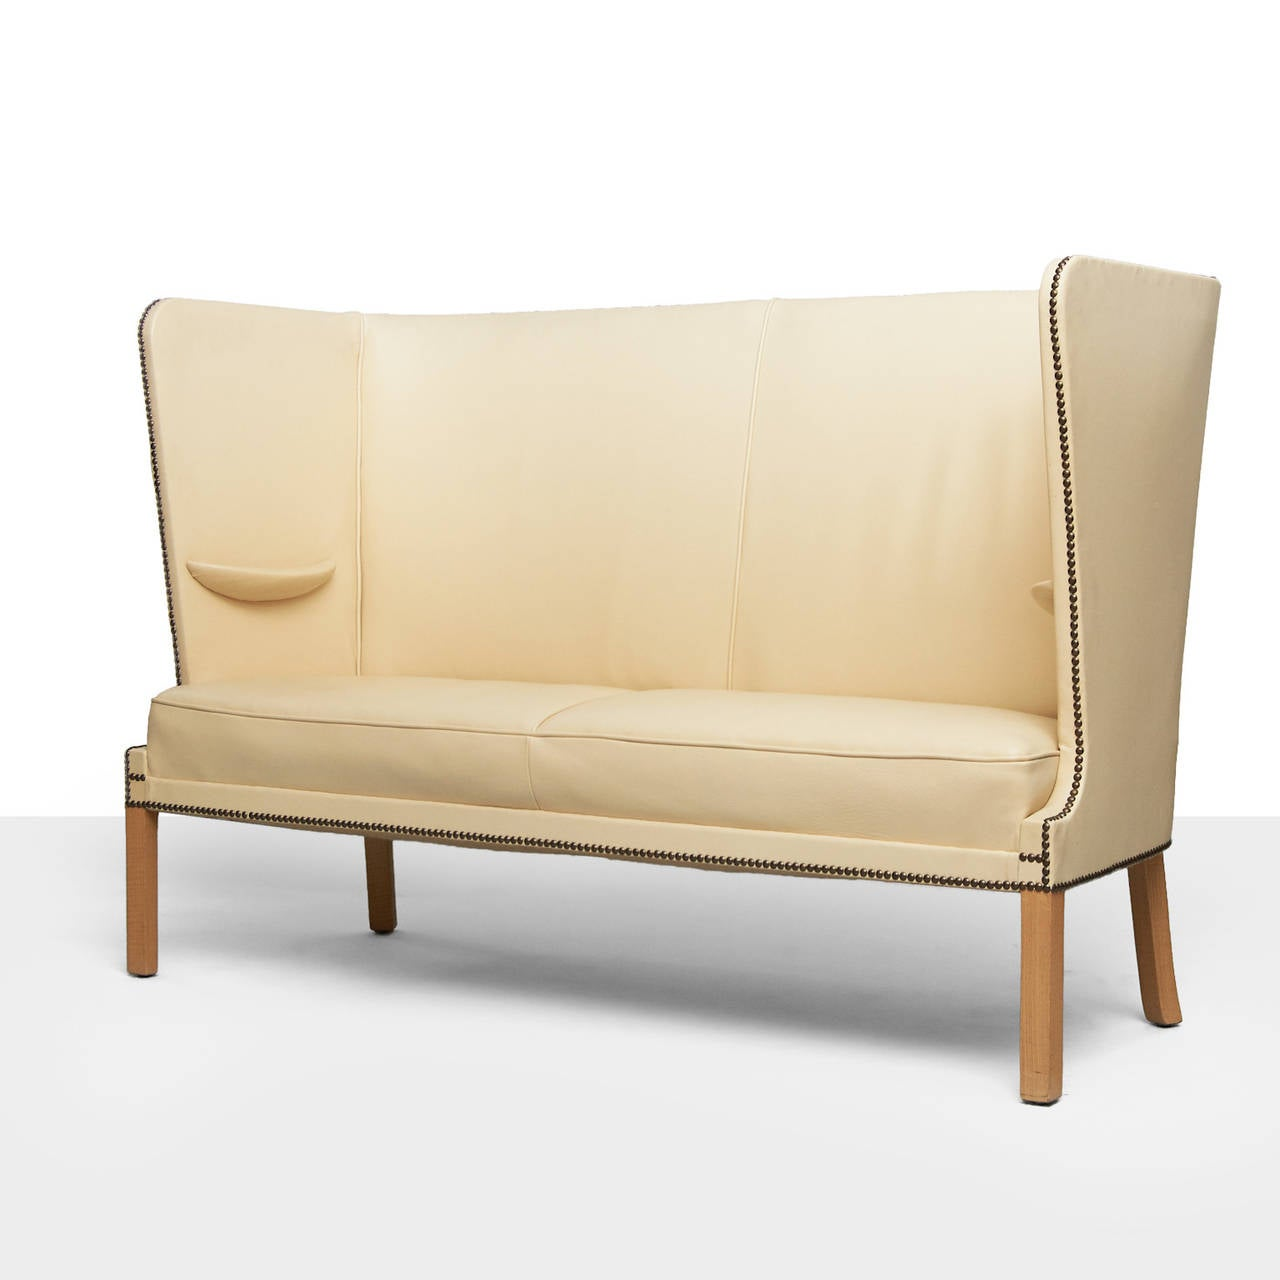 A Frits Henningsen settee of oak and its original ivory leather upholstery with nailhead trim. Features a high wingback and half moon armrests. Designed in Denmark, circa 1940.